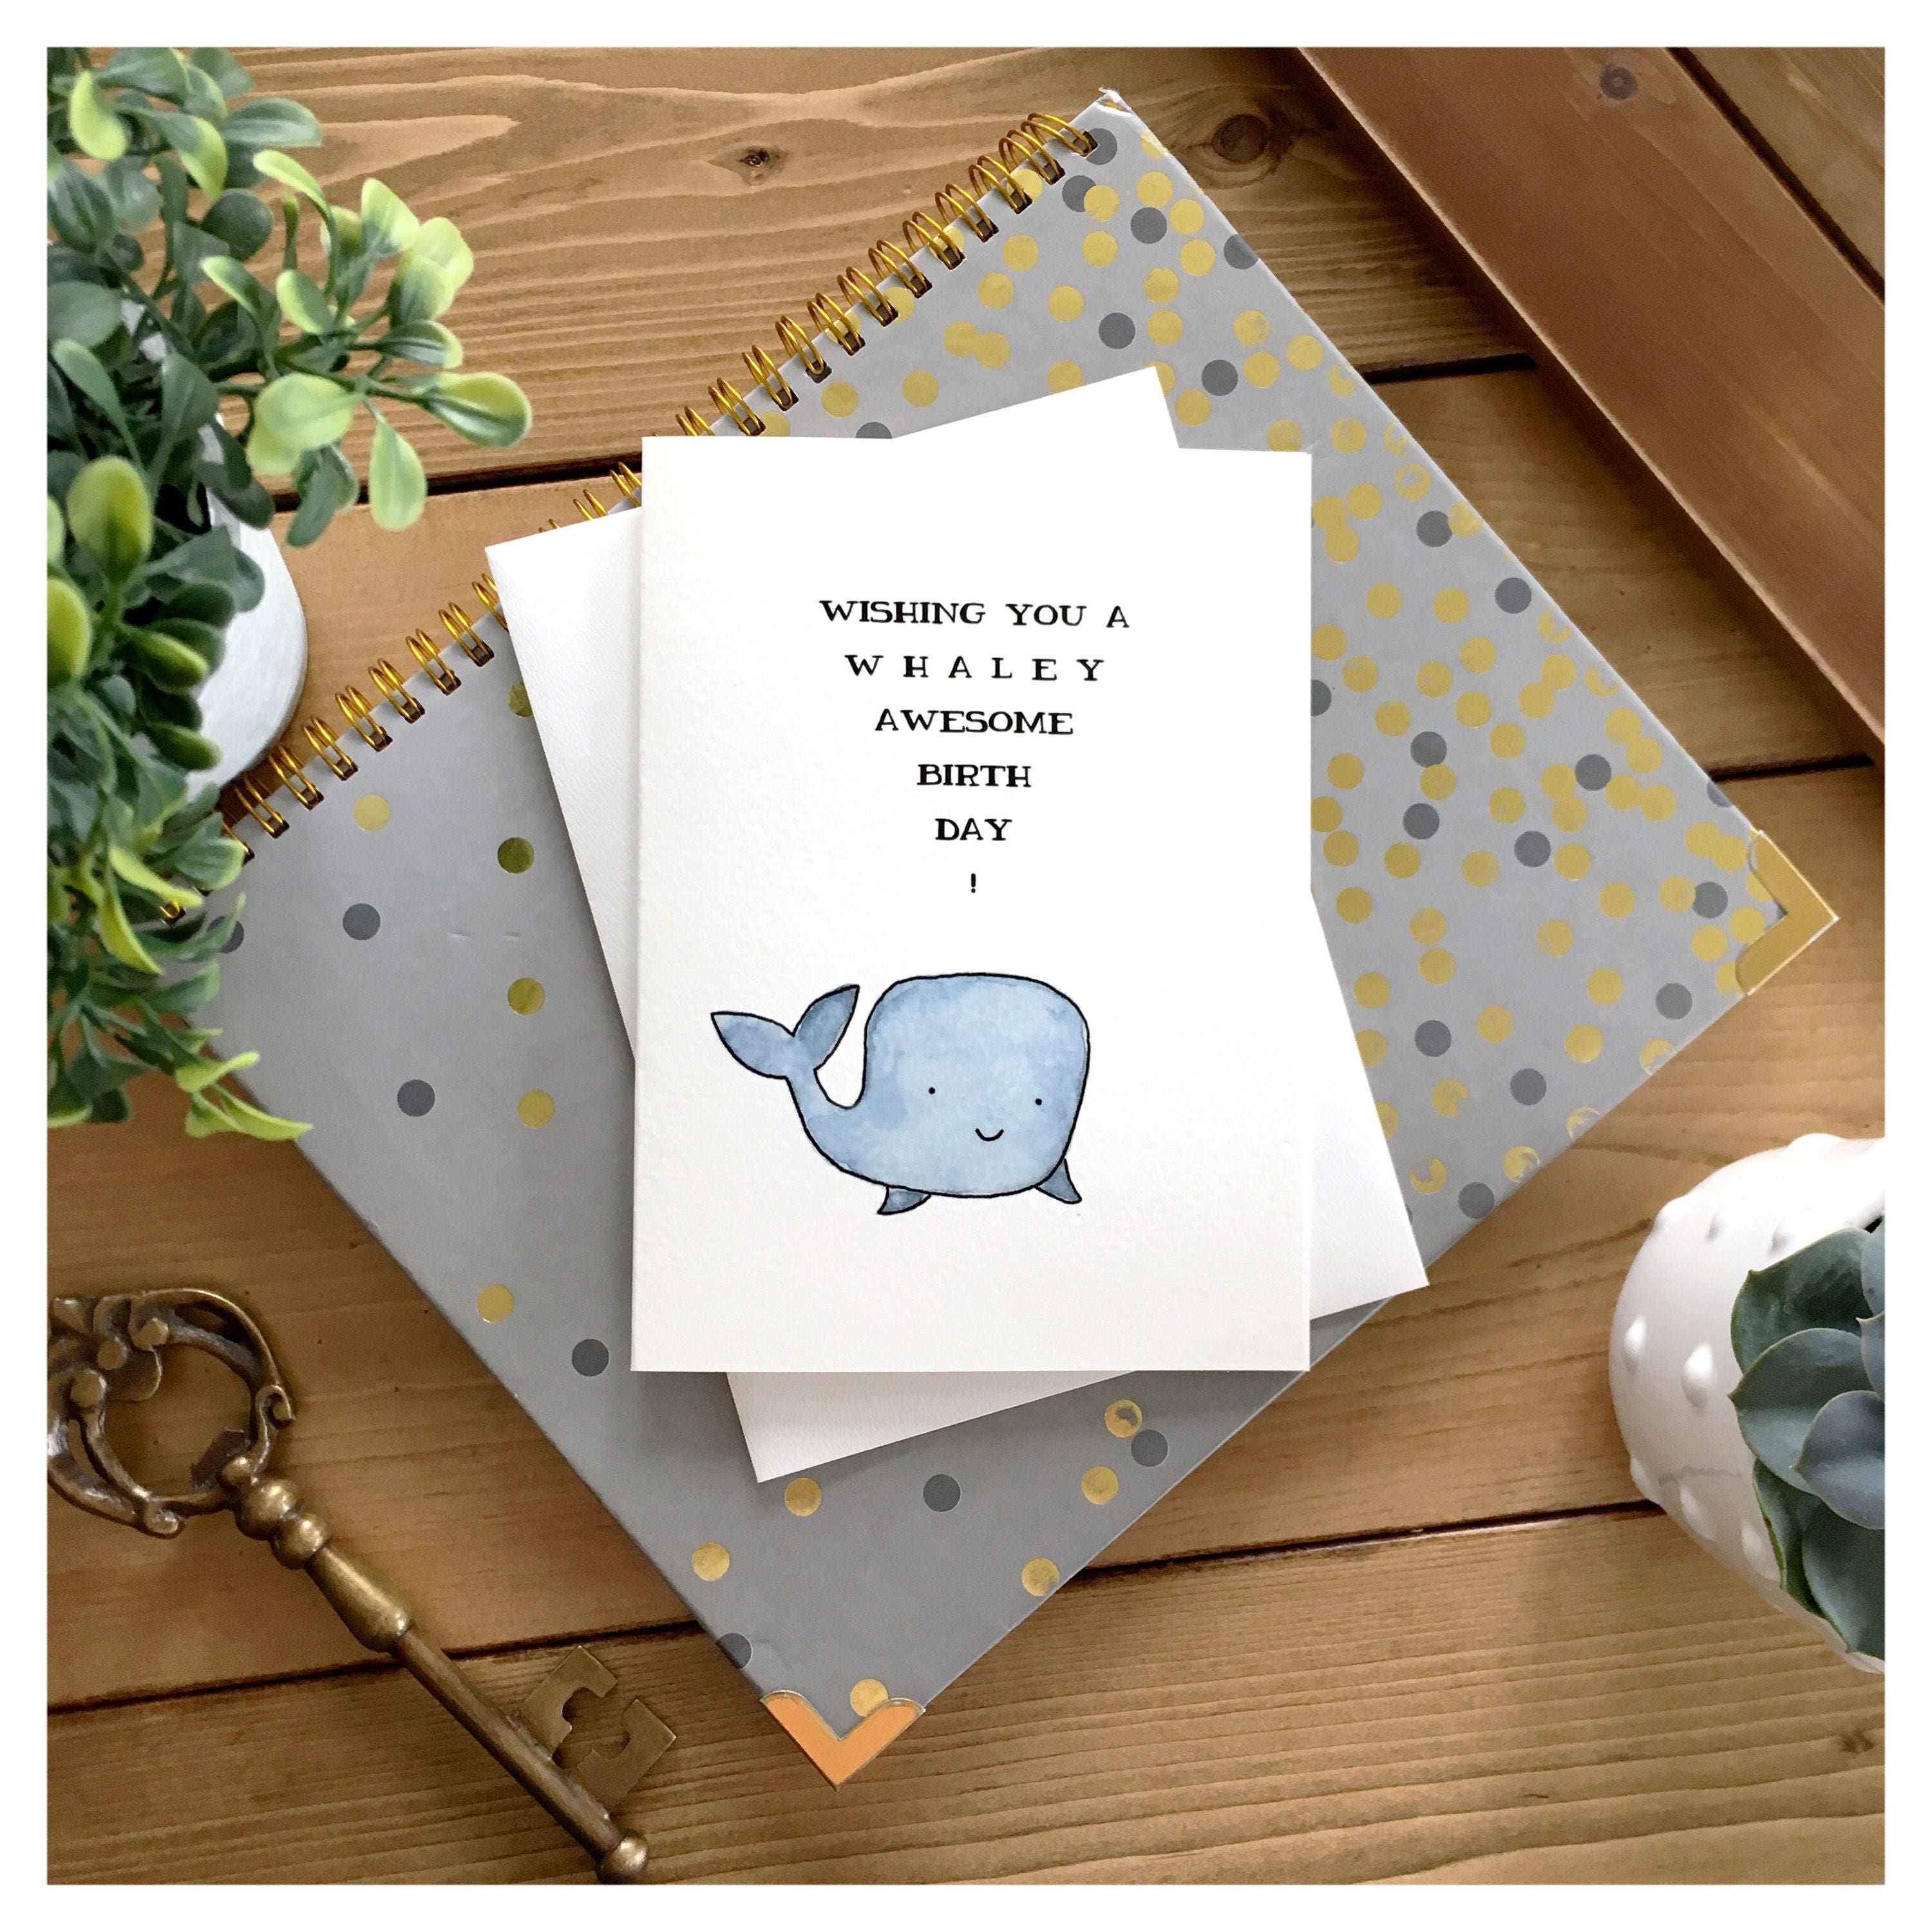 Whale birthday card cute card whale card pun card cute whale birthday card cute card whale card pun card cute birthday card funny birthday card birthday card greeting card whale punny bookmarktalkfo Image collections